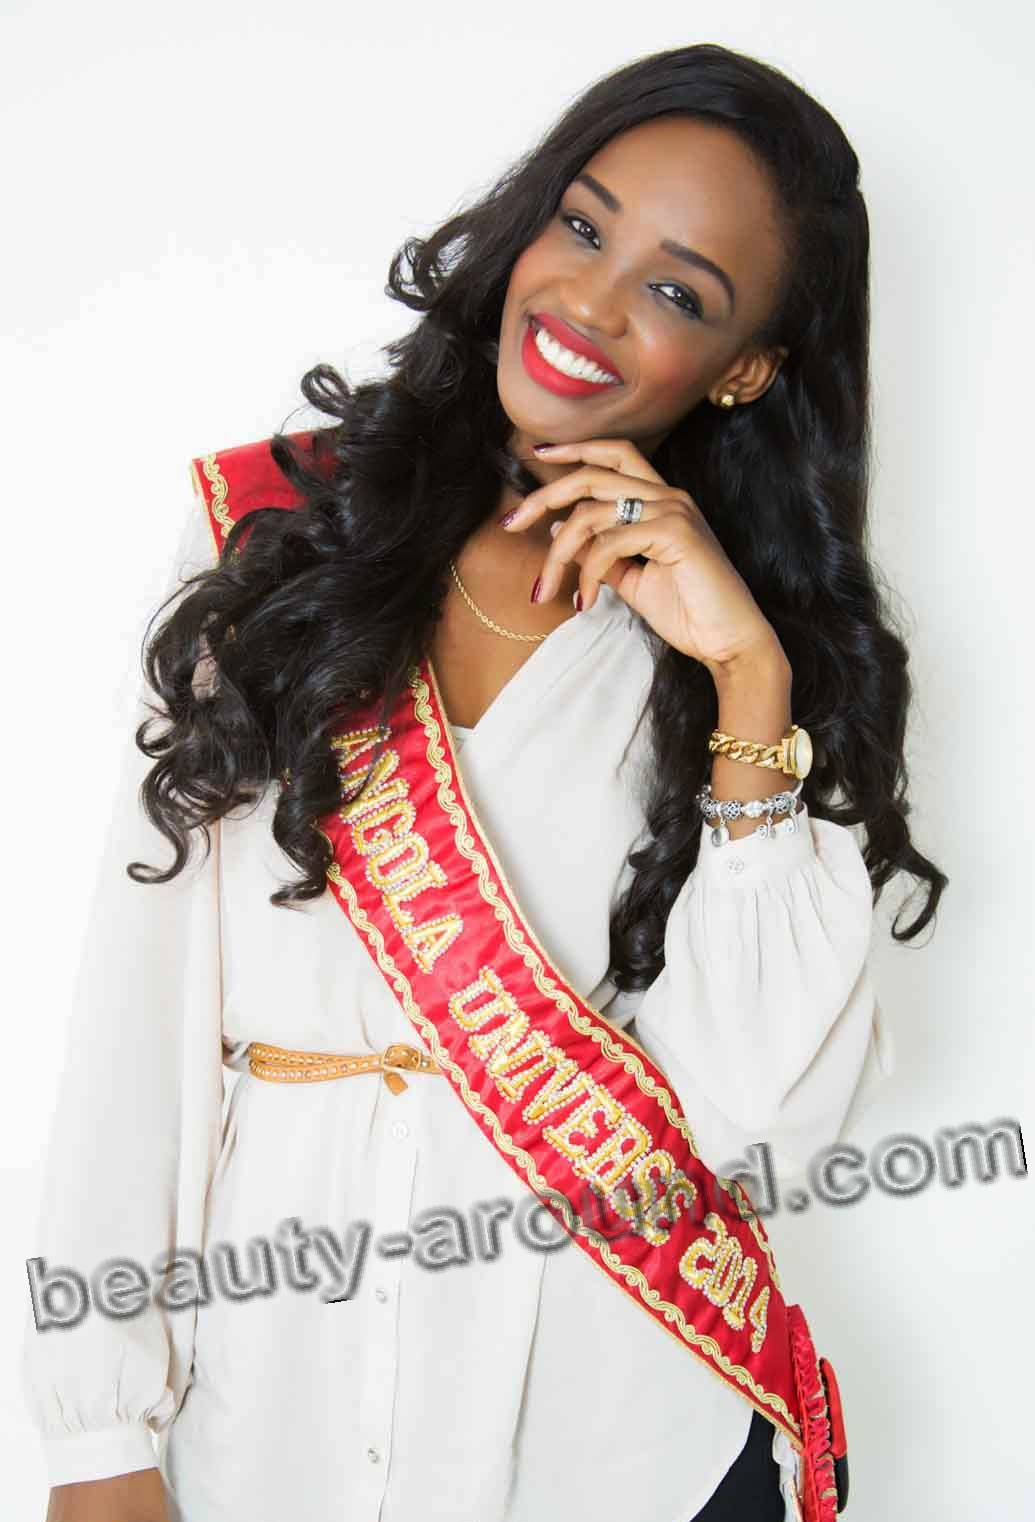 Contestants Miss Universe 2014. Zuleica Wilson Miss Universe Angola photo